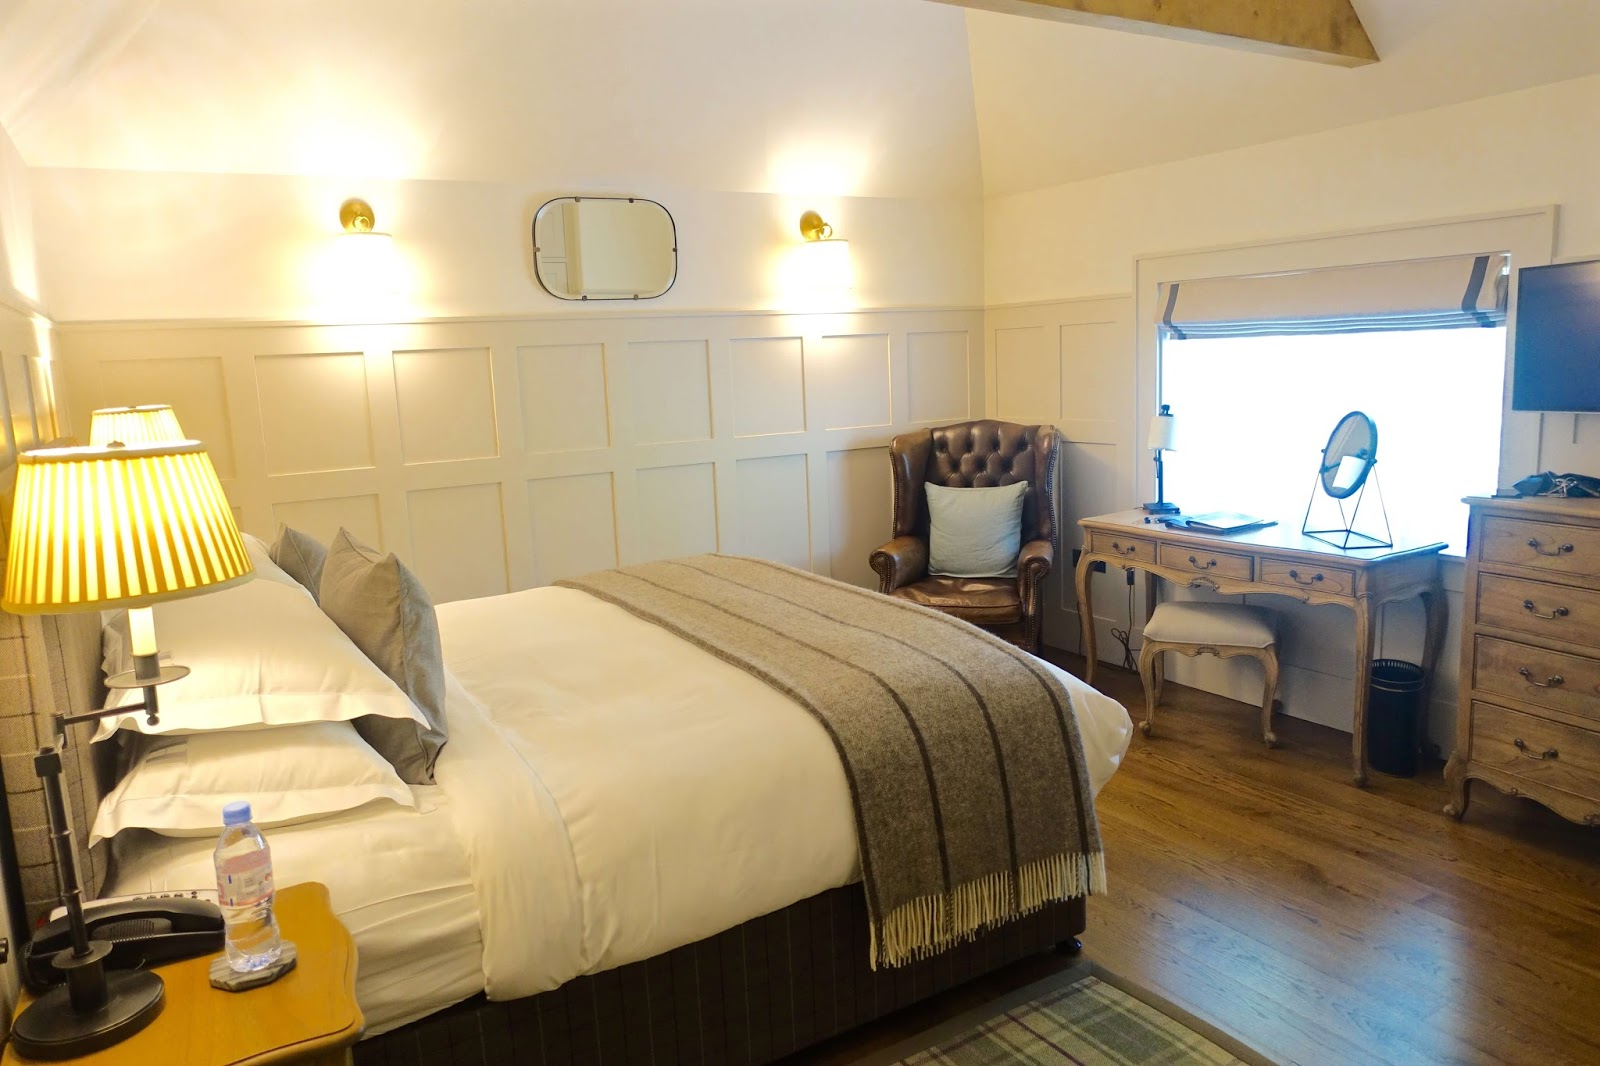 chic boutique hotel in the heart of Berkshire